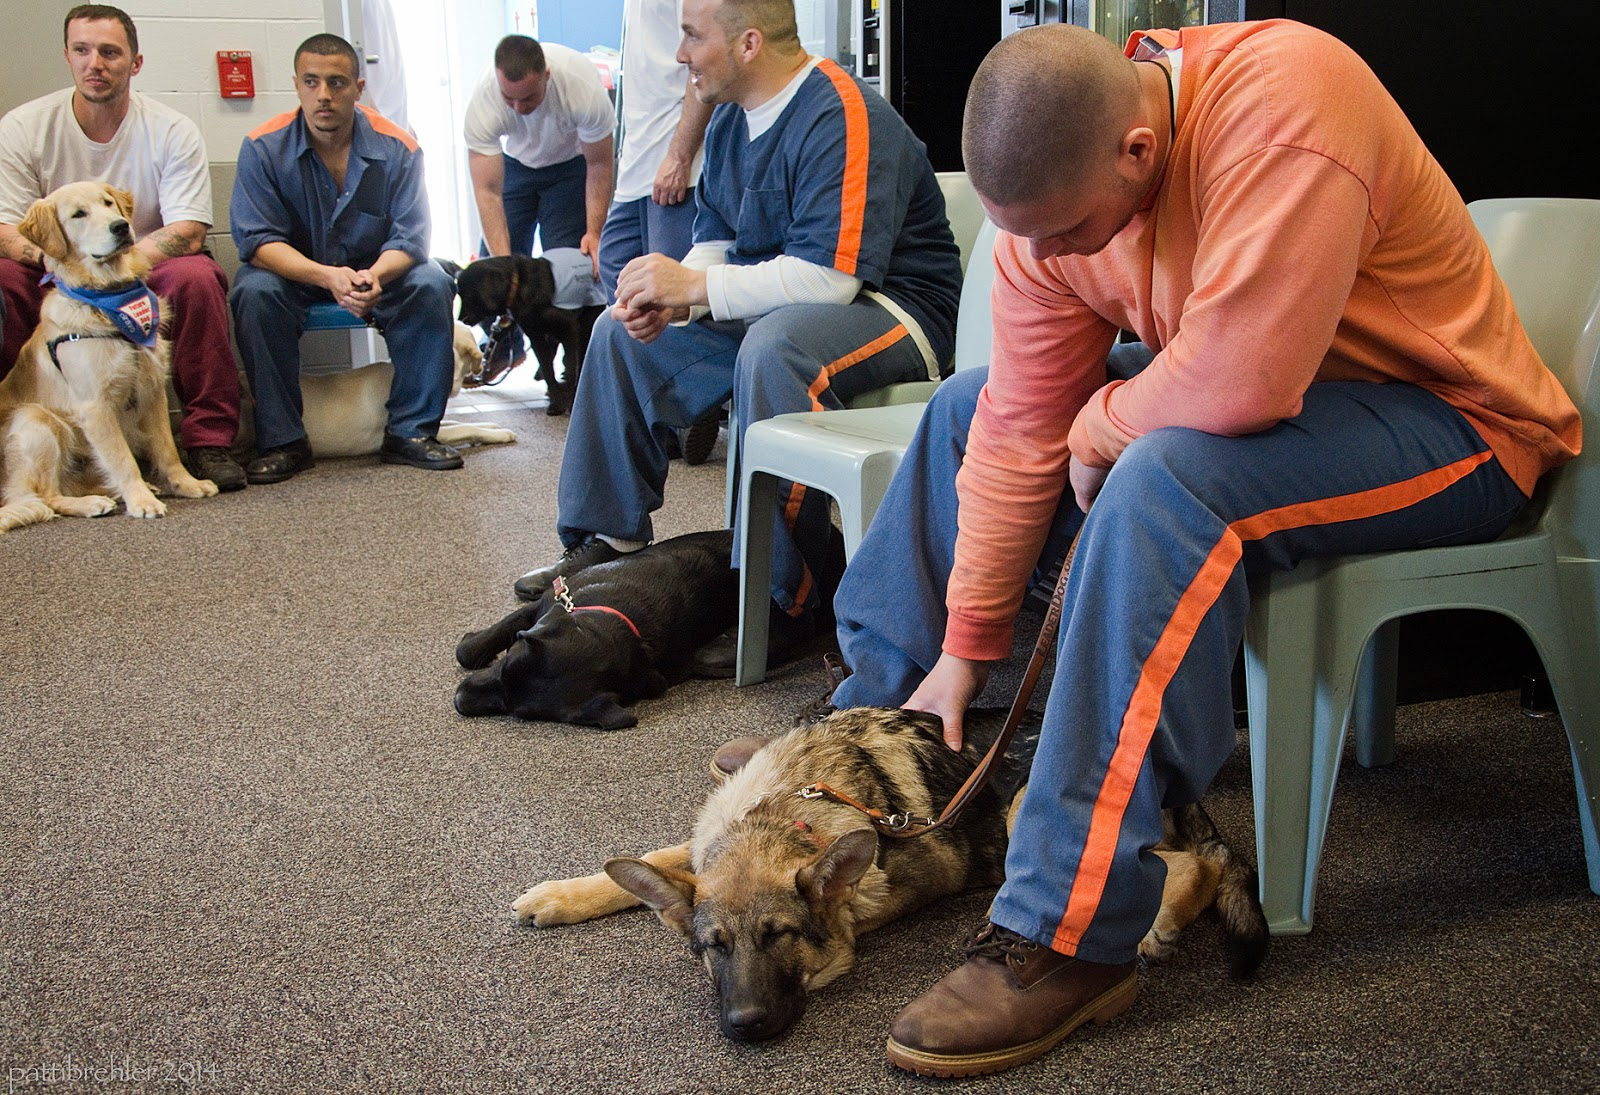 There are two men on the left in the background sitting on chairs facing the camera. The man on the far left is wearing a white t-shirt and maroon pants and there is a golden retriever sitting on the carpet between the man's knees. The man next to him is wearing the prison blue uniform and is resting his forearms on his knees with his hands clasped between them. There is a man to the left coming in a door, leaning over a black lab wearing a light blue jacket. This man is wearing a white t-shirt and blue pants. On the right side are two men stting on light blue chairs facing the left. The man closest to the camera on the far right is wearing a light orange shirt and prison blue pants and is leaning over to pet a german shepherd with his right hand. The german shepherd is lying on the carpet under his chair. The next man is wearing the prison blue uniform and has his elbos on his knees. A black lab is lying on its left side under the man's chair.